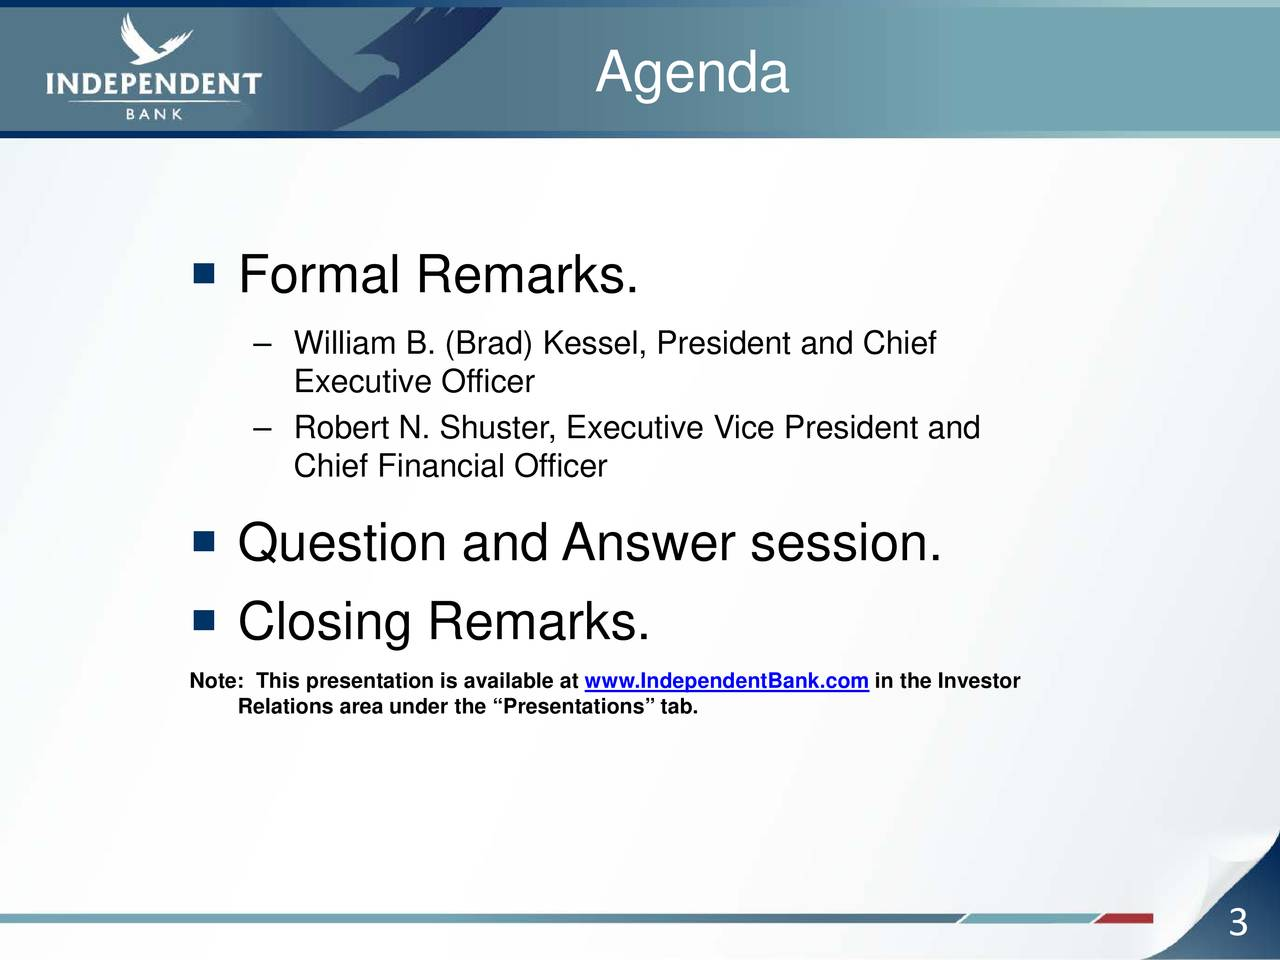 """ Formal Remarks. – William B. (Brad) Kessel, President and Chief Executive Officer – Robert N. Shuster, Executive Vice President and Chief Financial Officer  Question and Answer session.  Closing Remarks. Note: This presentation is available at www.IndependentBank.com in the Investor Relations area under the """"Presentations"""" tab. 3"""